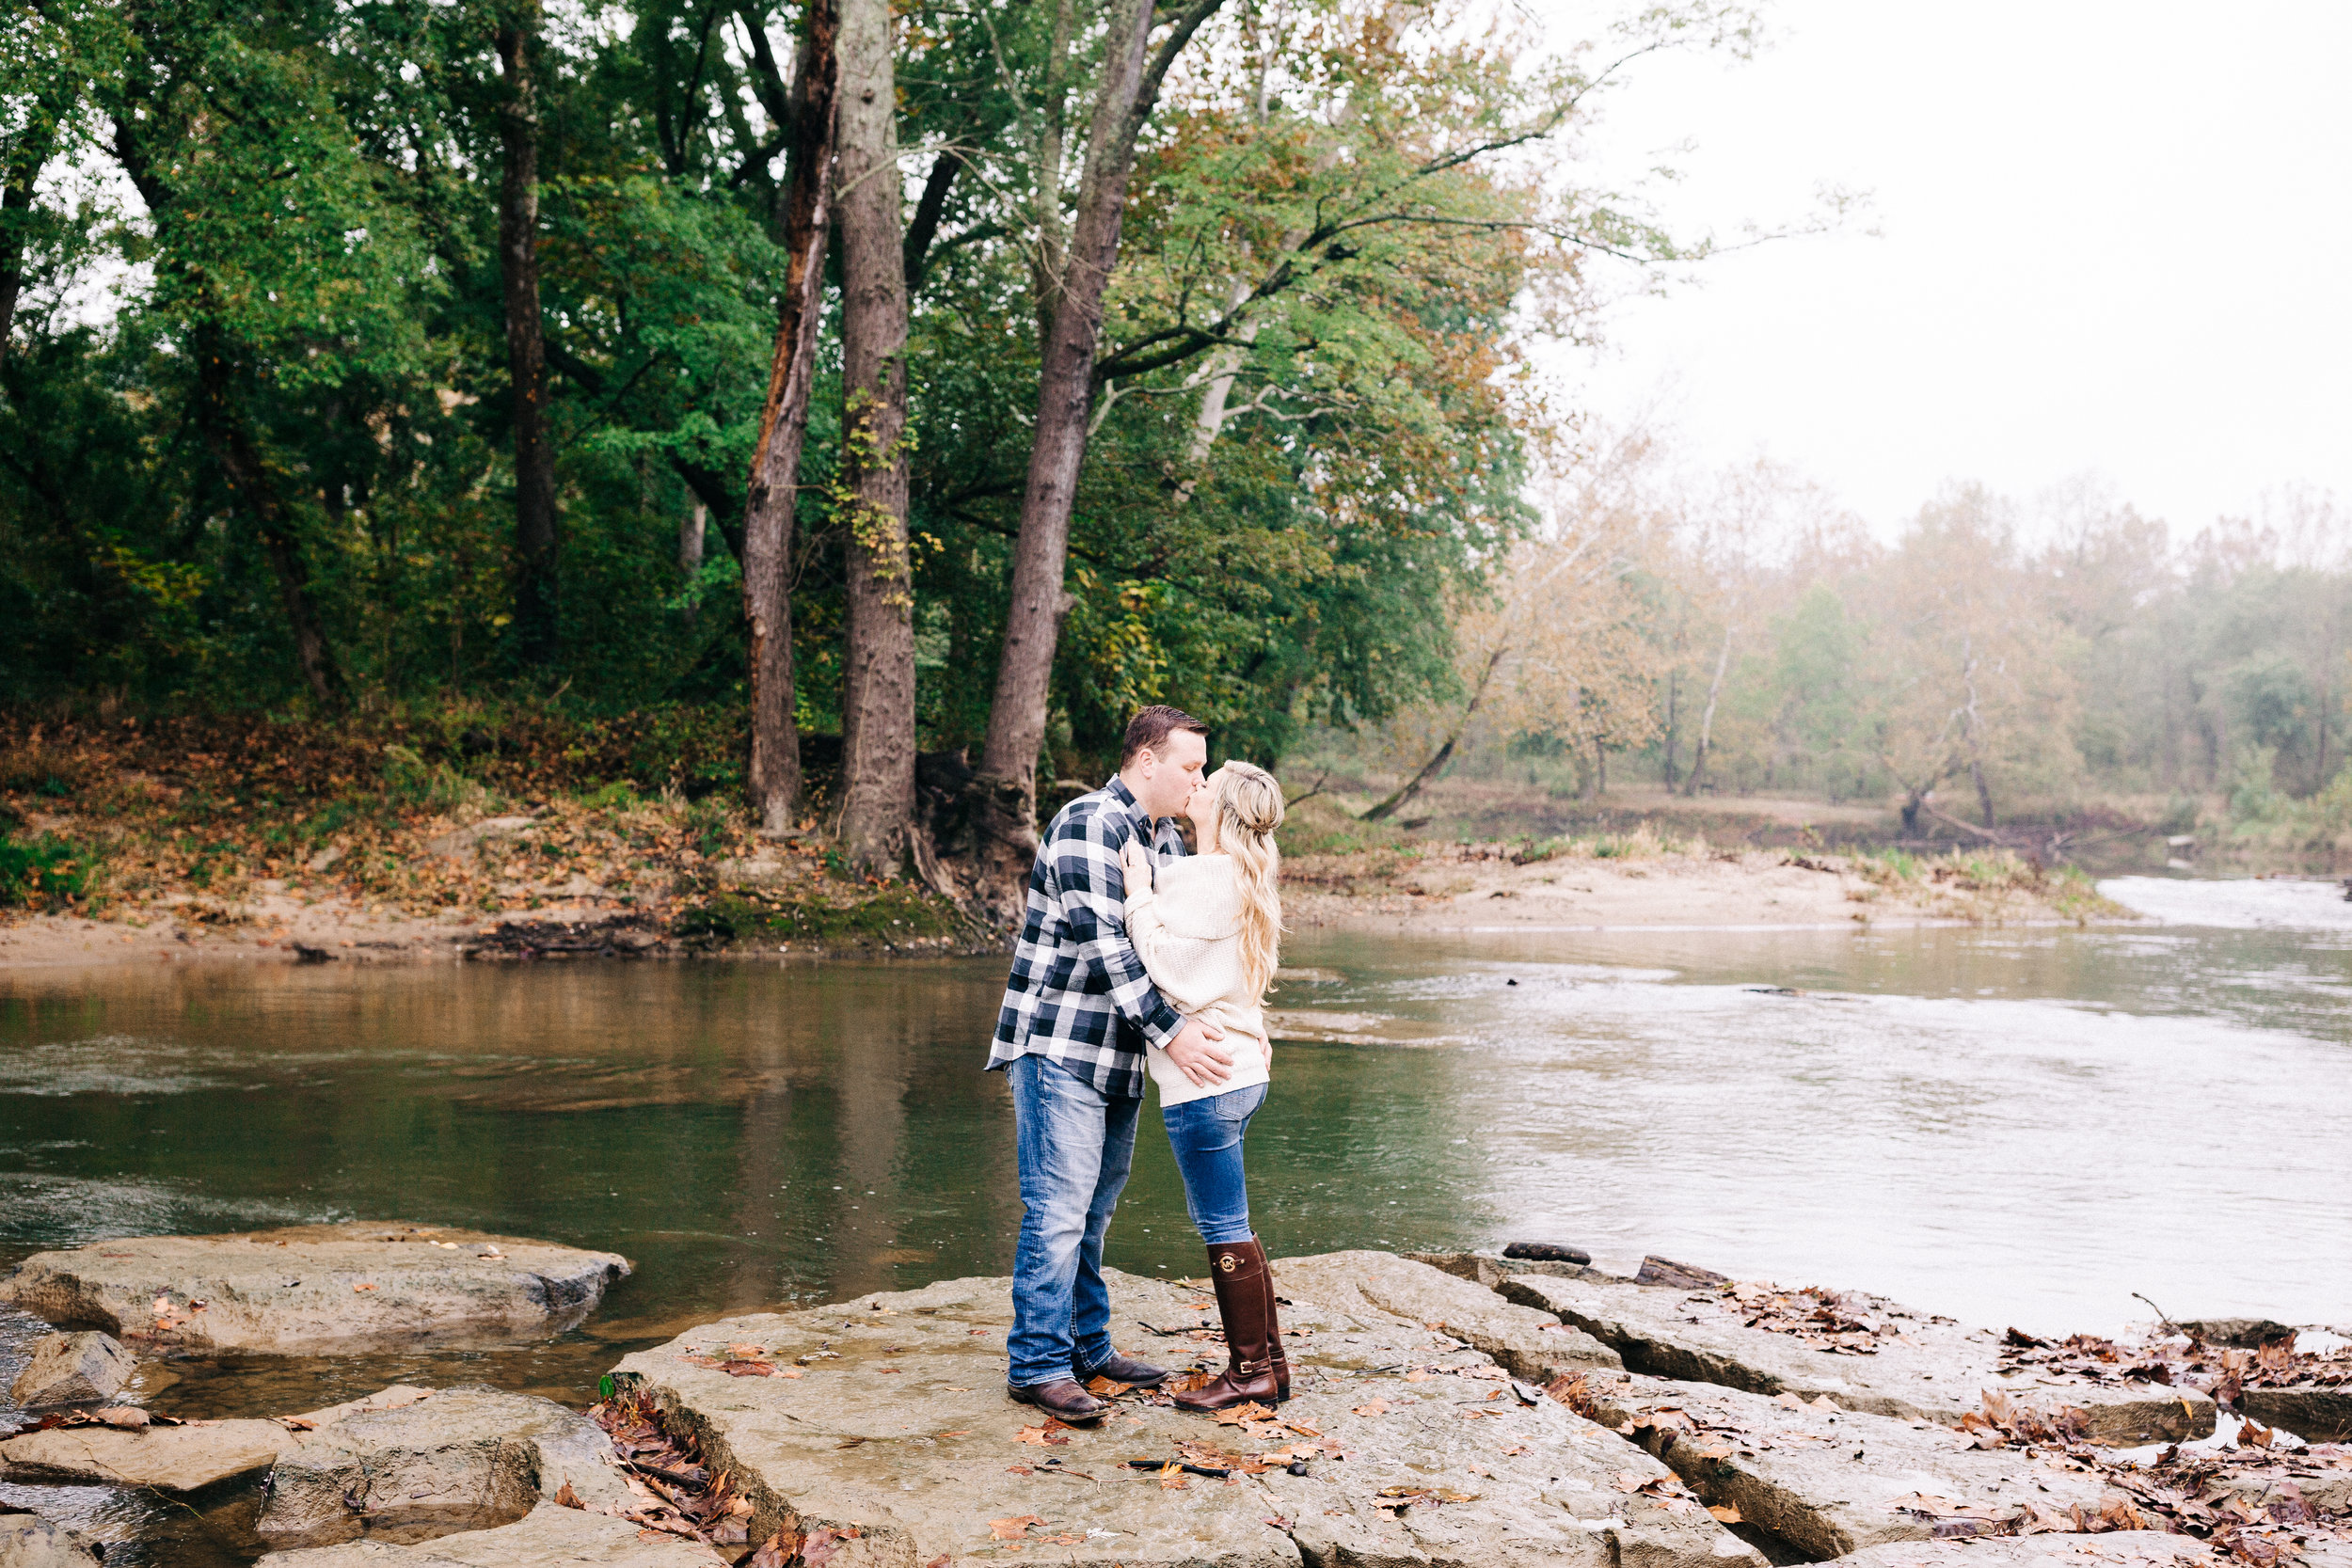 Dorothy_Louise_Photography_Alyssa_Drew_Indiana_Engagement_Cataract_Falls-64.jpg